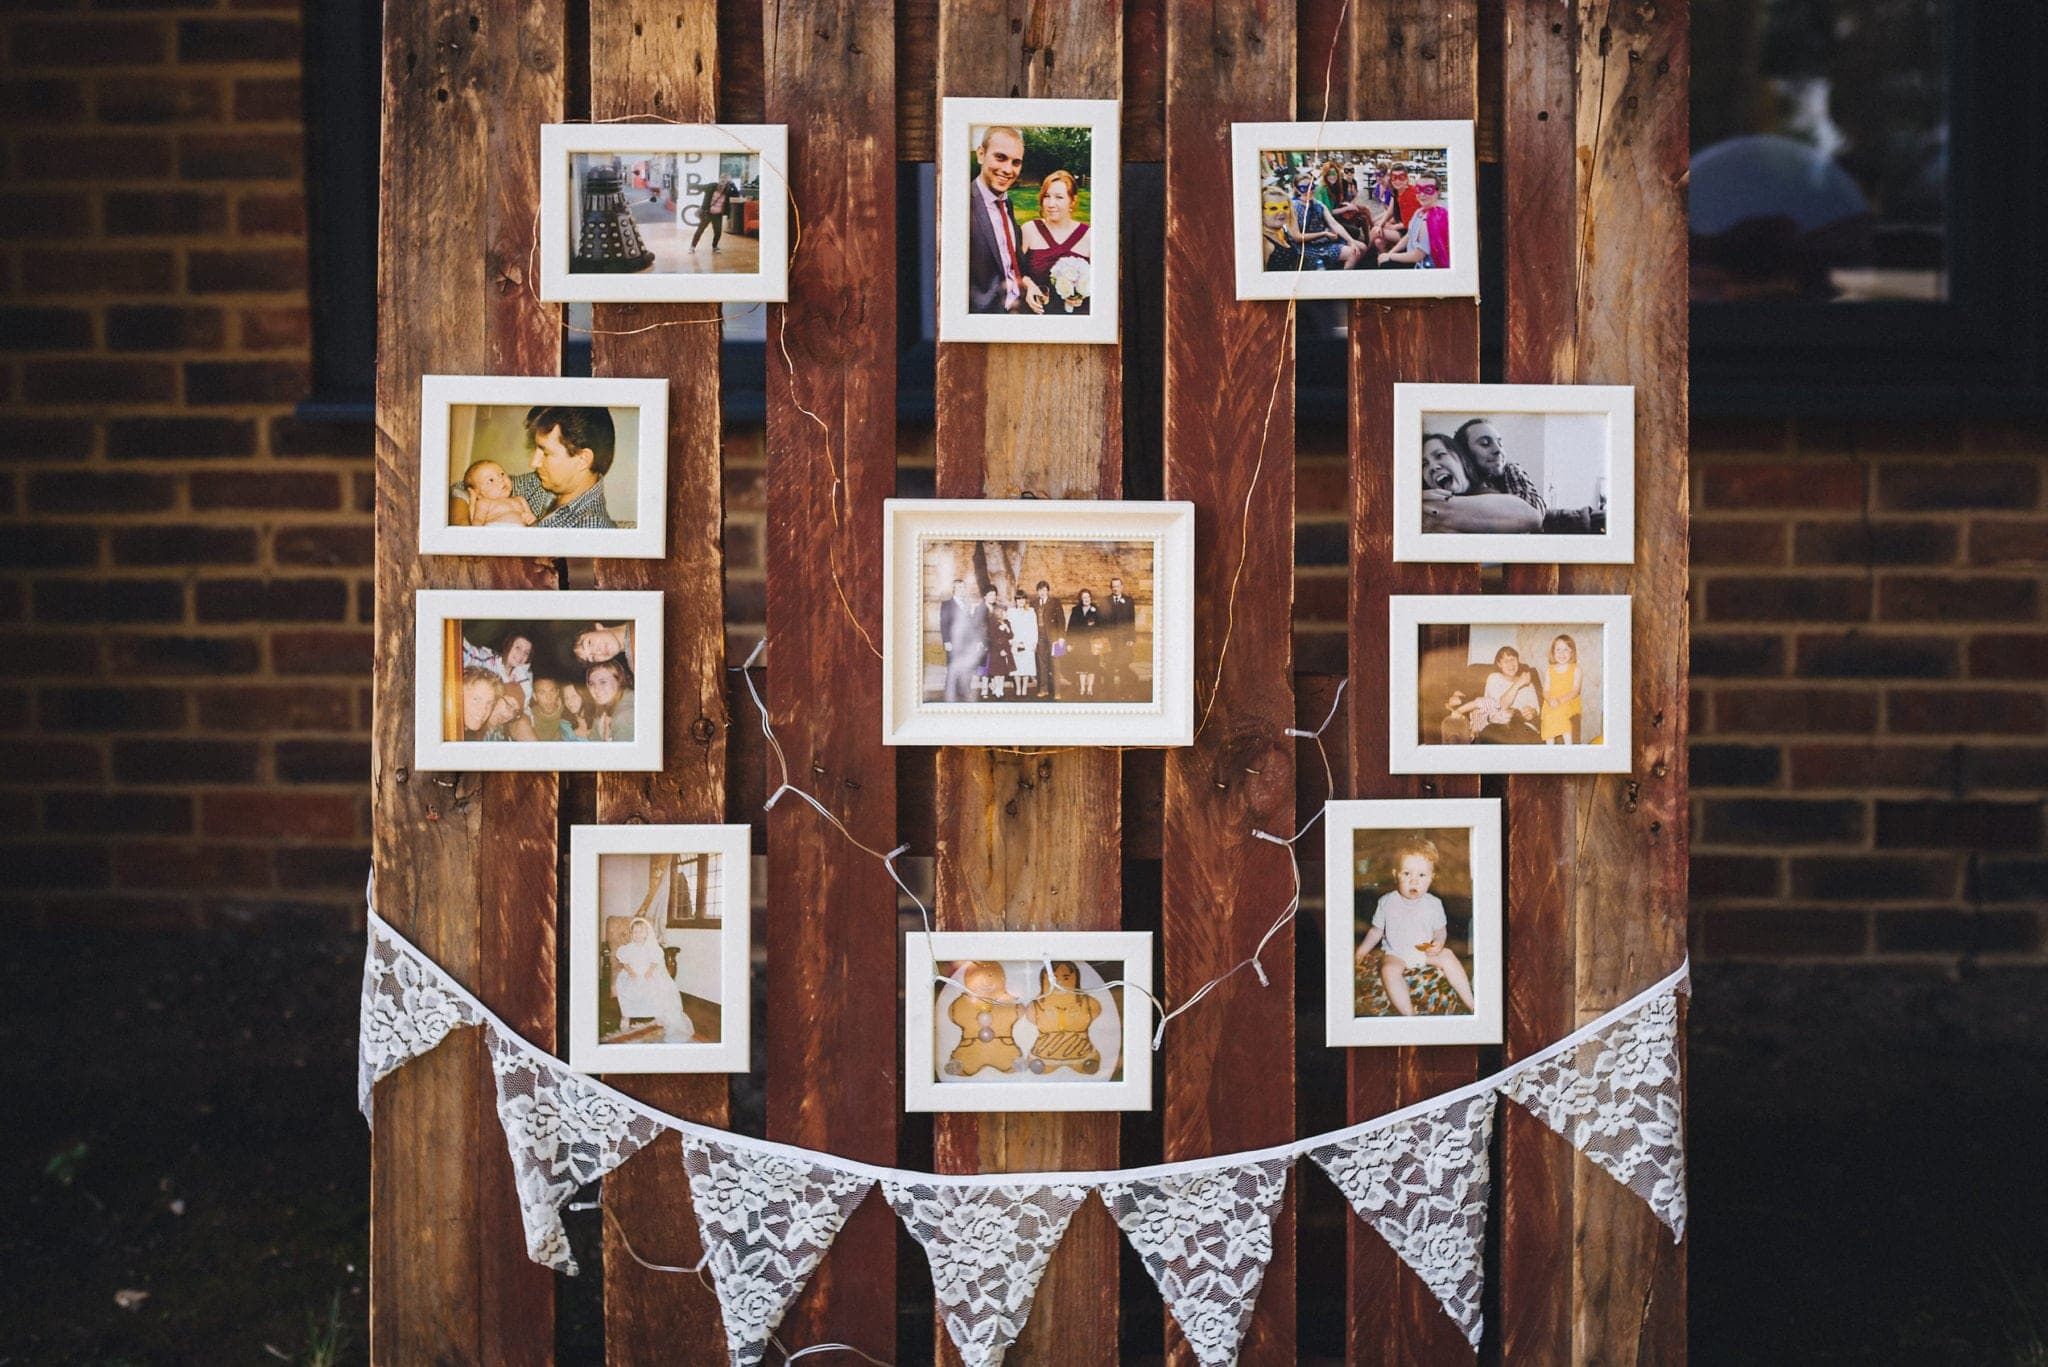 Framed photos of the bridal couple on a palette with fairylights and lace bunting